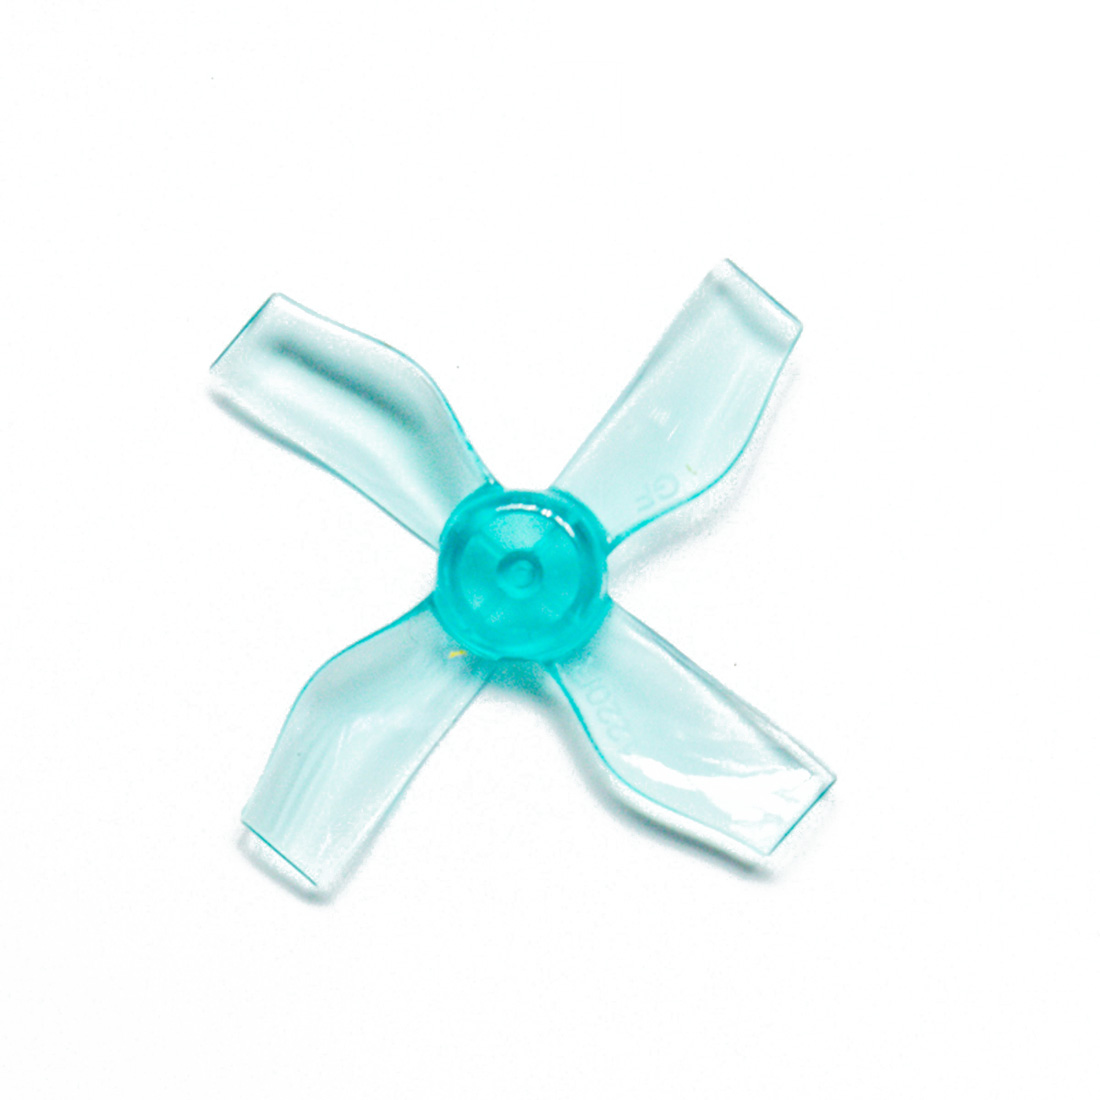 Gemfan 1220 1.2x2x4 31mm 1mm Hole 4-blade Propeller PC CW CCW Props for